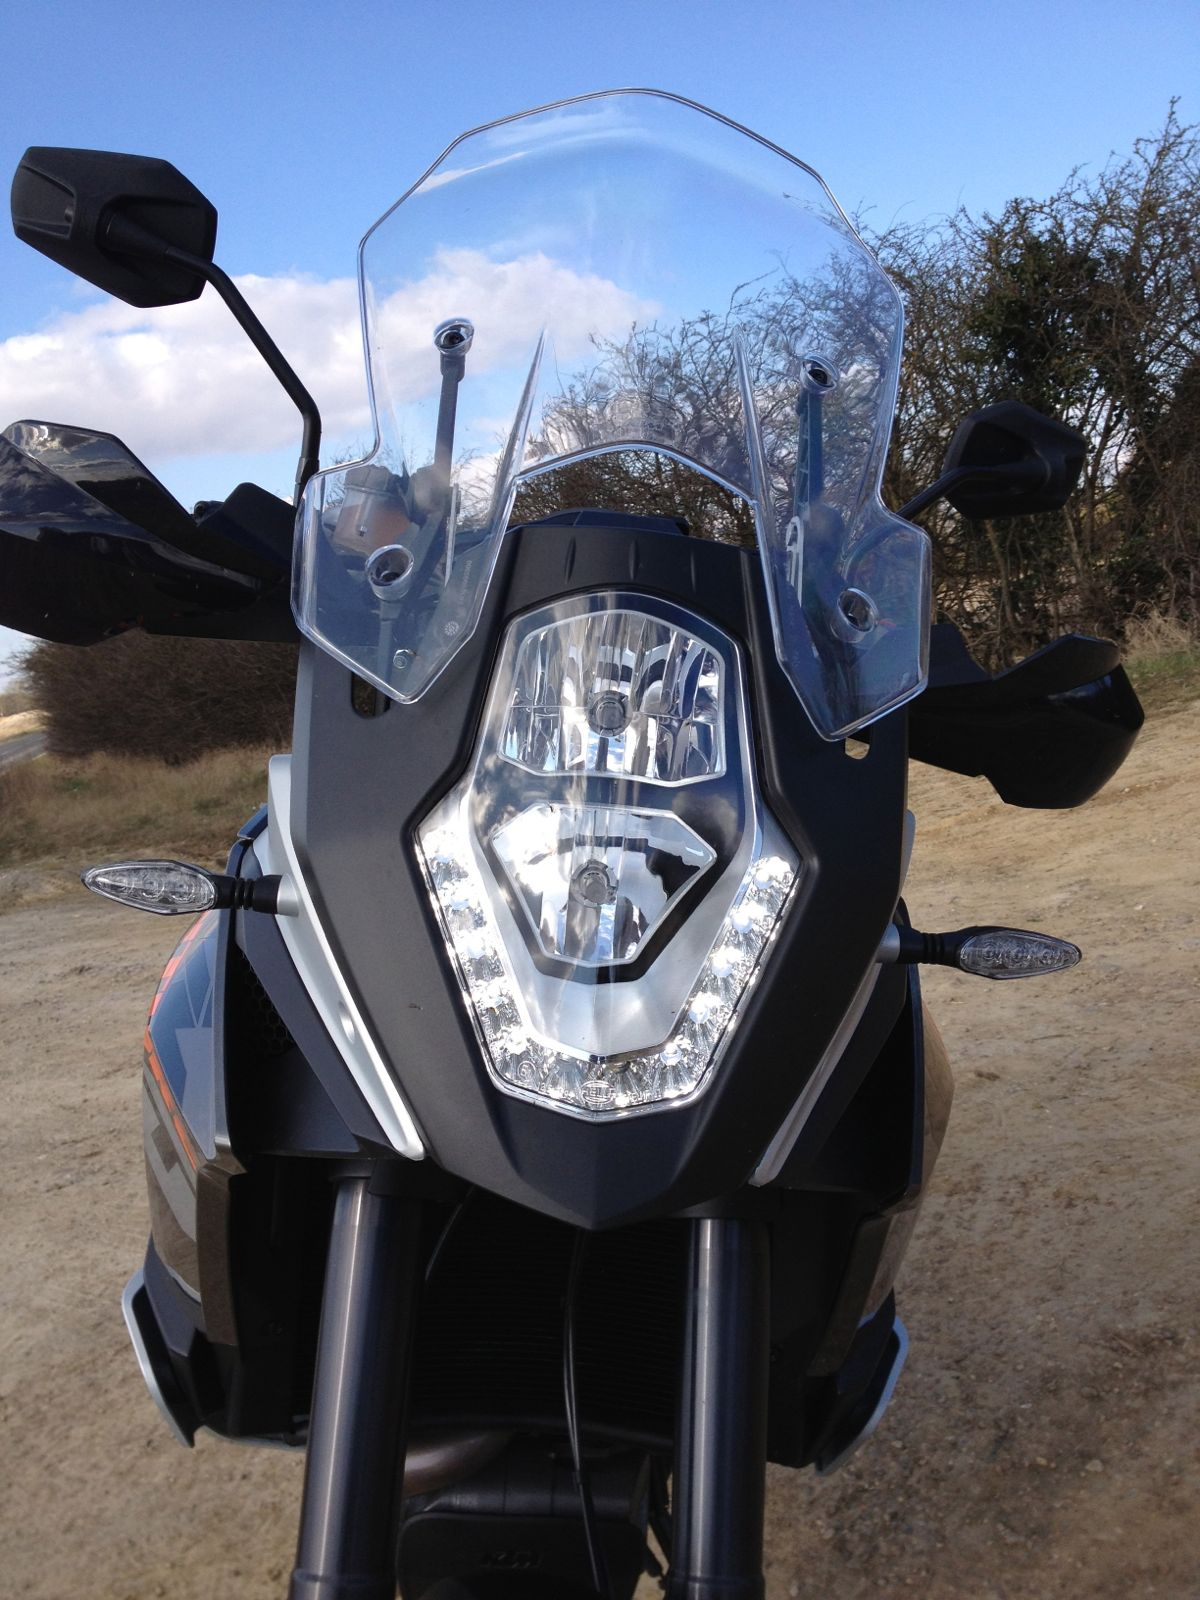 Gordos Travels Test Ride Ktm 1190 Adventure Automatic Bike Headlight Switch From Experience In Cars Lights Dont Come On When Its Bright But The Visibility Is Poor At Least You Can Turn Them Manually Car